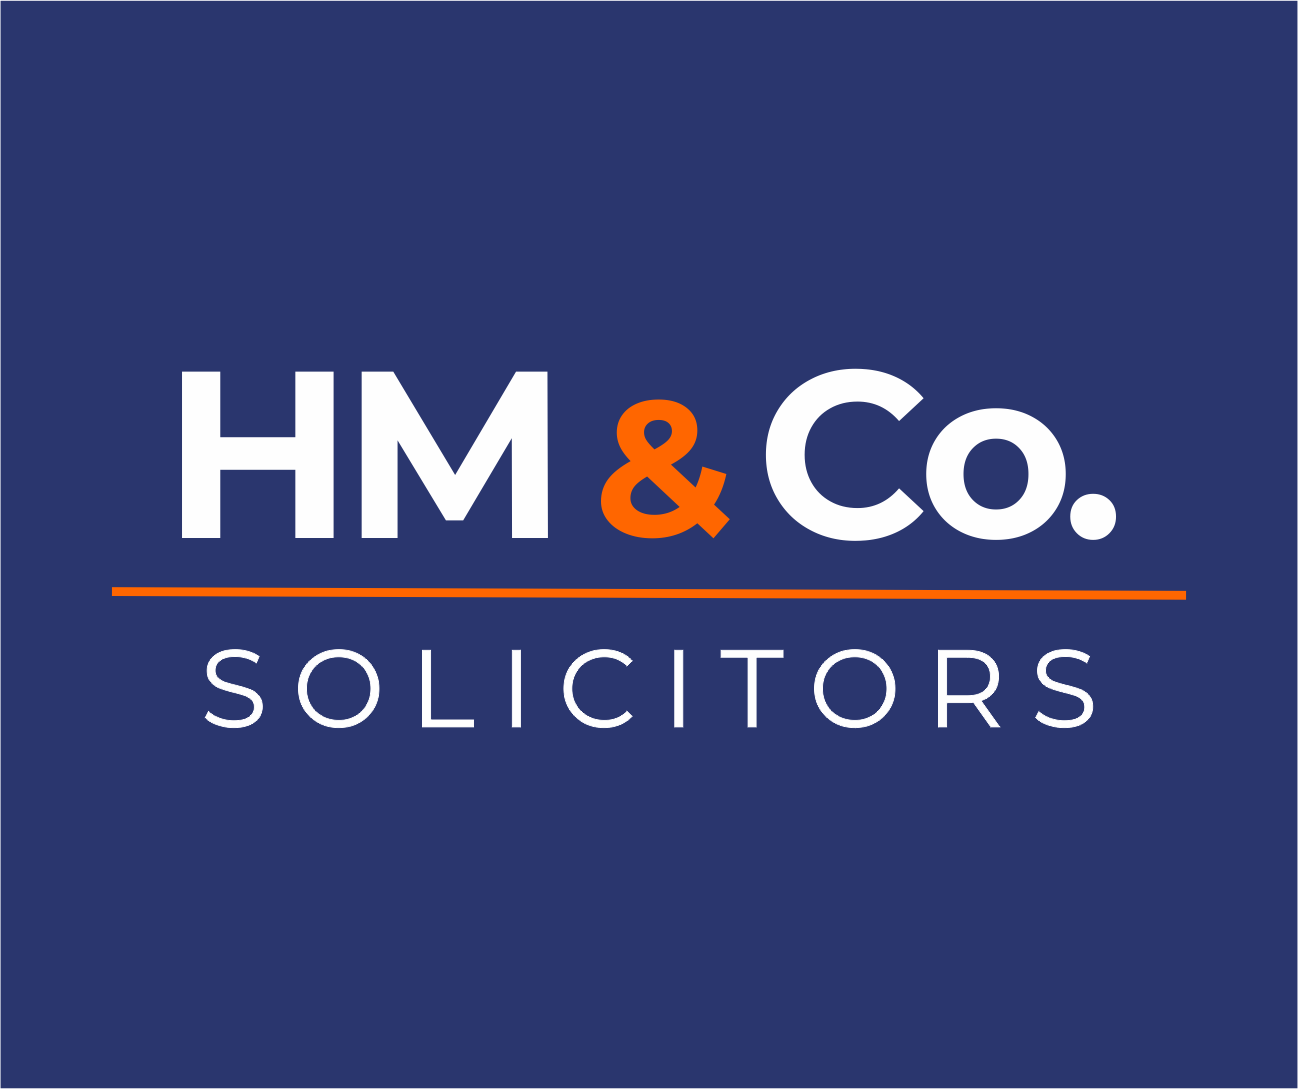 HM & Co. Solicitors logo